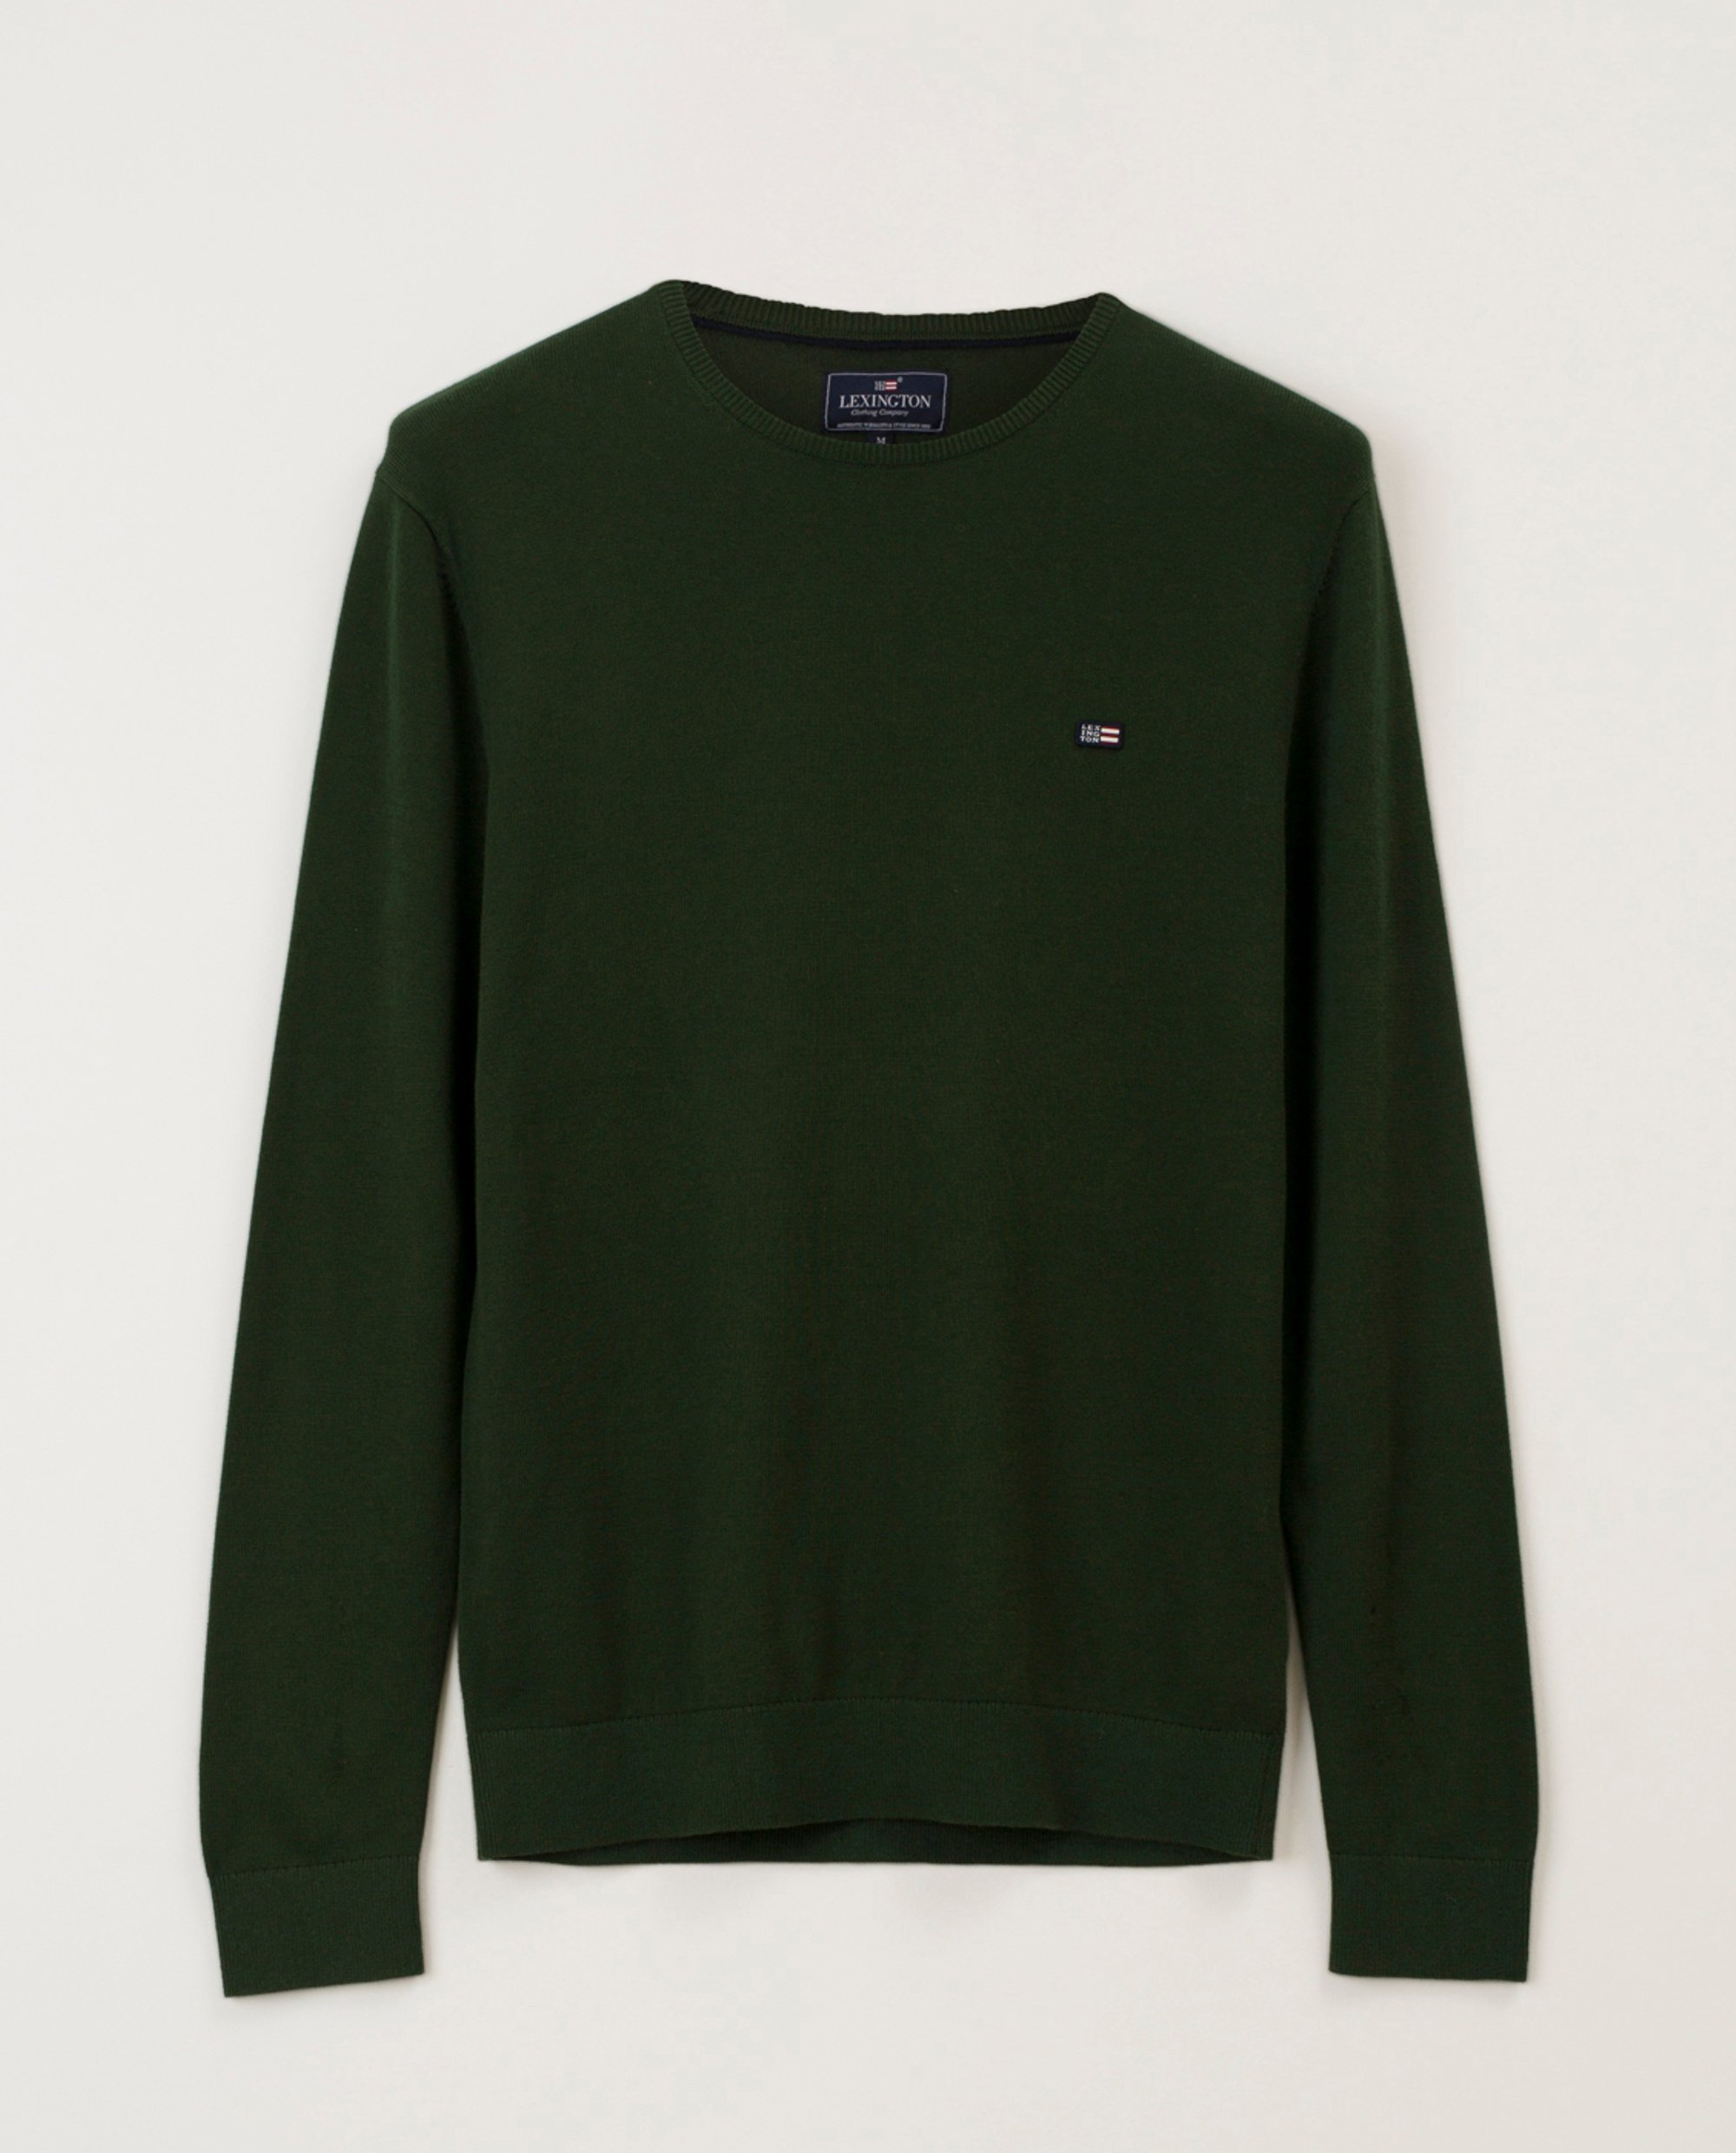 Bradley Crew Neck Sweater, Green